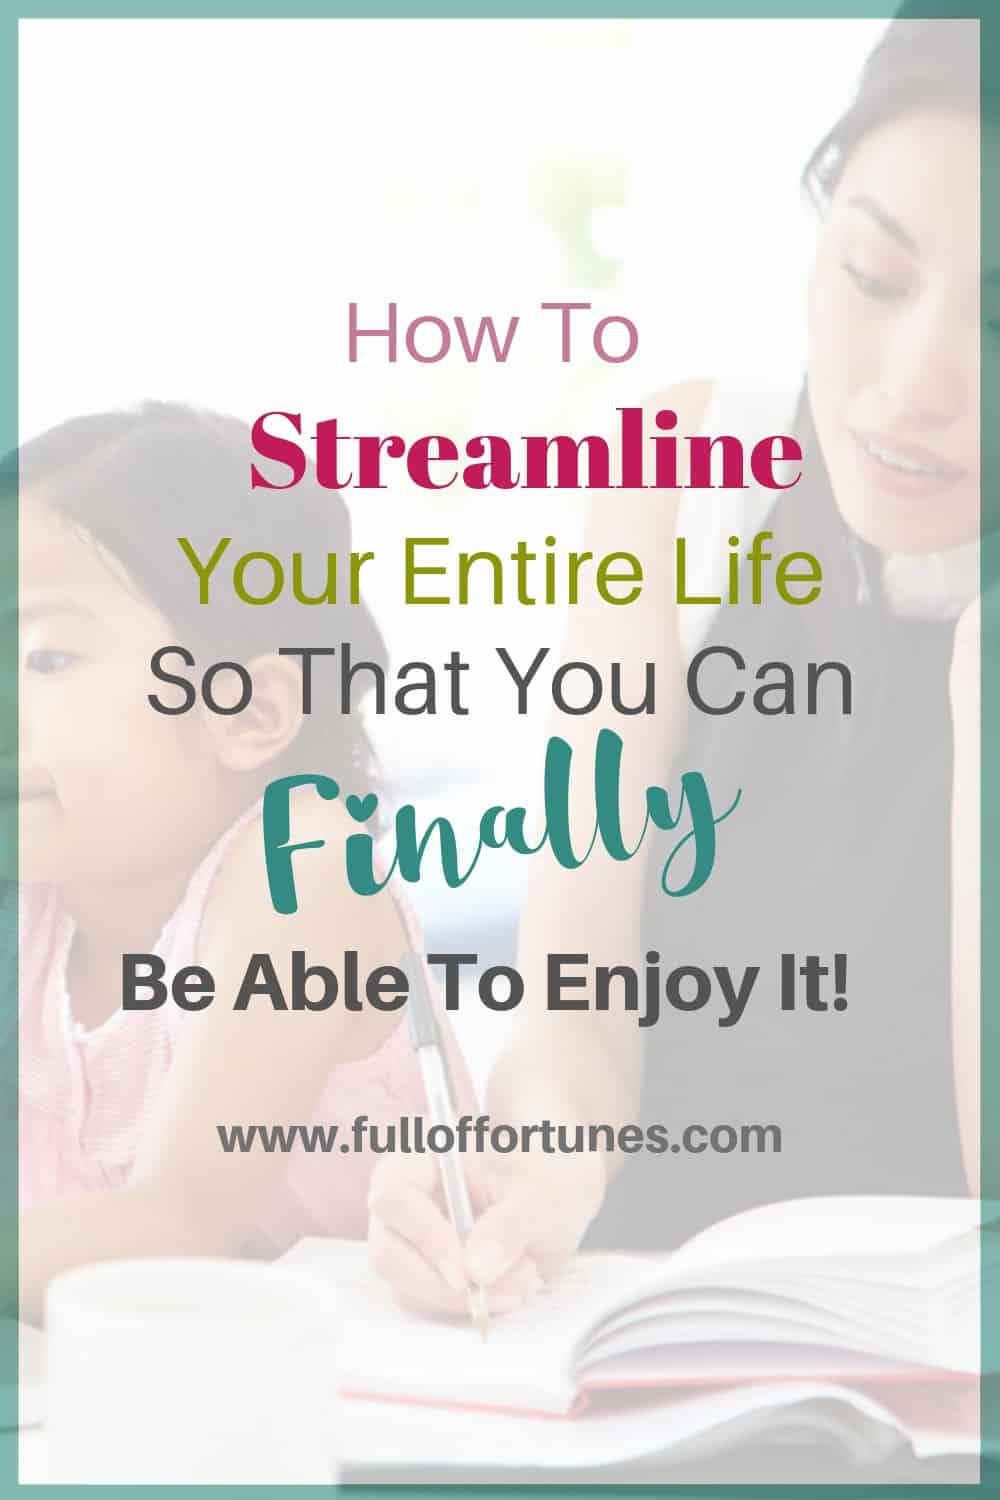 You're a busy mom with calls to make, kids to take care of, and things to do keeps piling up. How do you keep it all together without skipping a beat? Here is how you can streamline your entire life so that you can finally be able to enjoy it too!